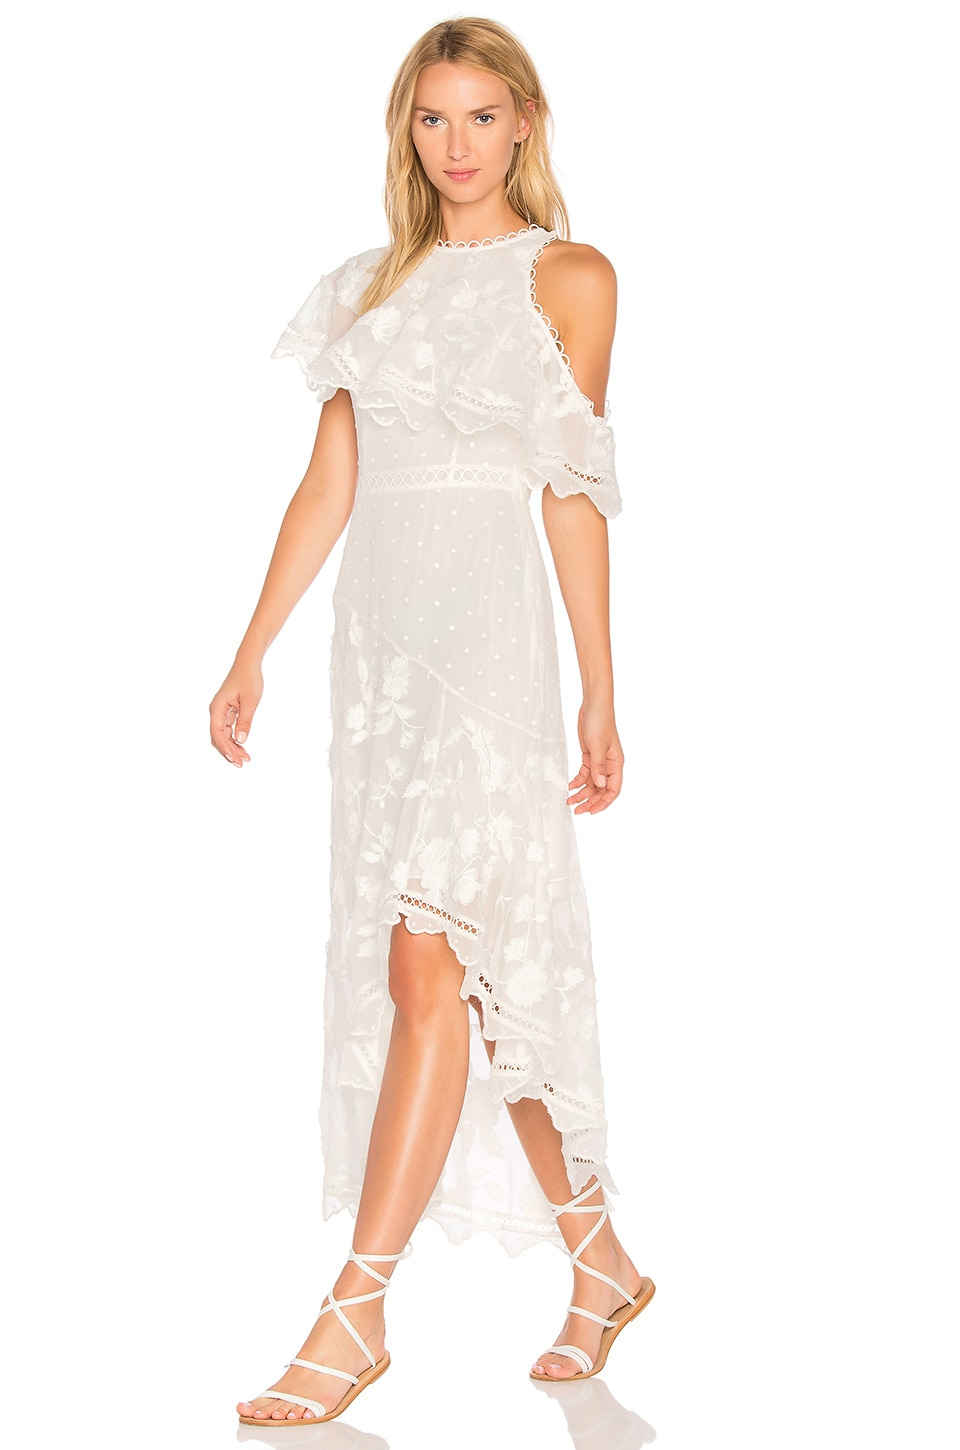 Mercer Bird Floating Dress by Zimmermann